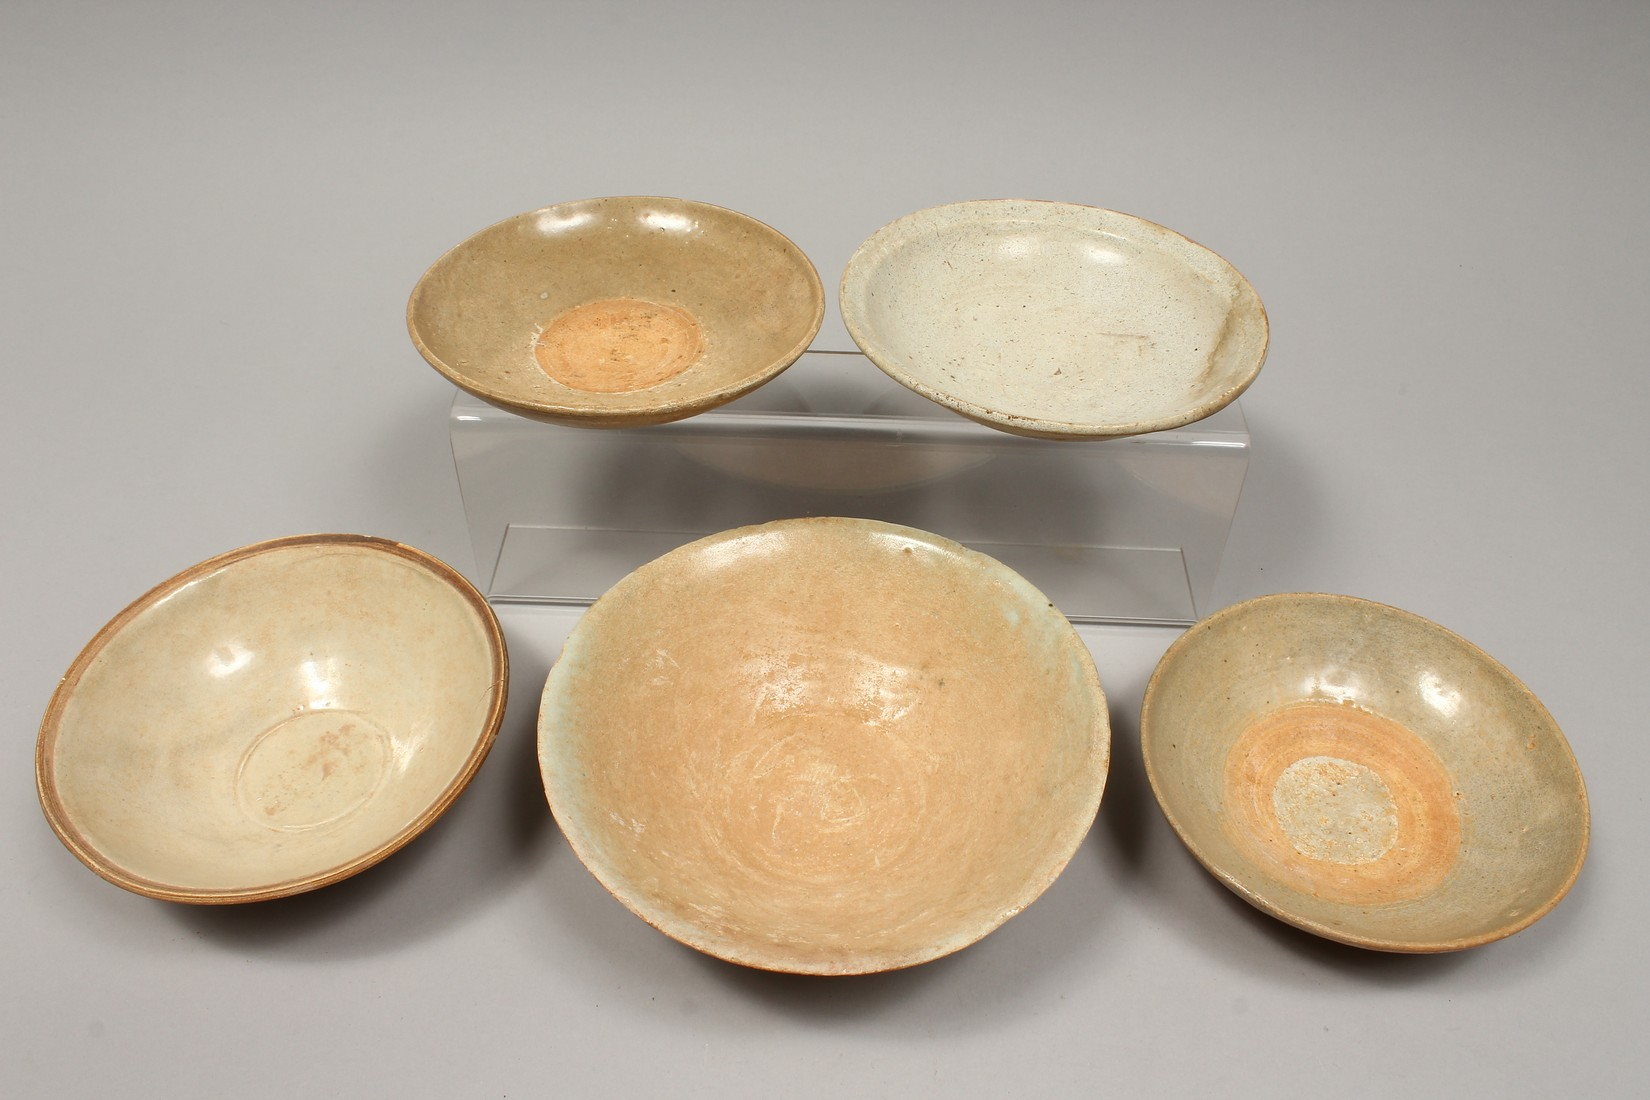 FIVE CHINESE POTTERY BOWLS. - Image 2 of 2